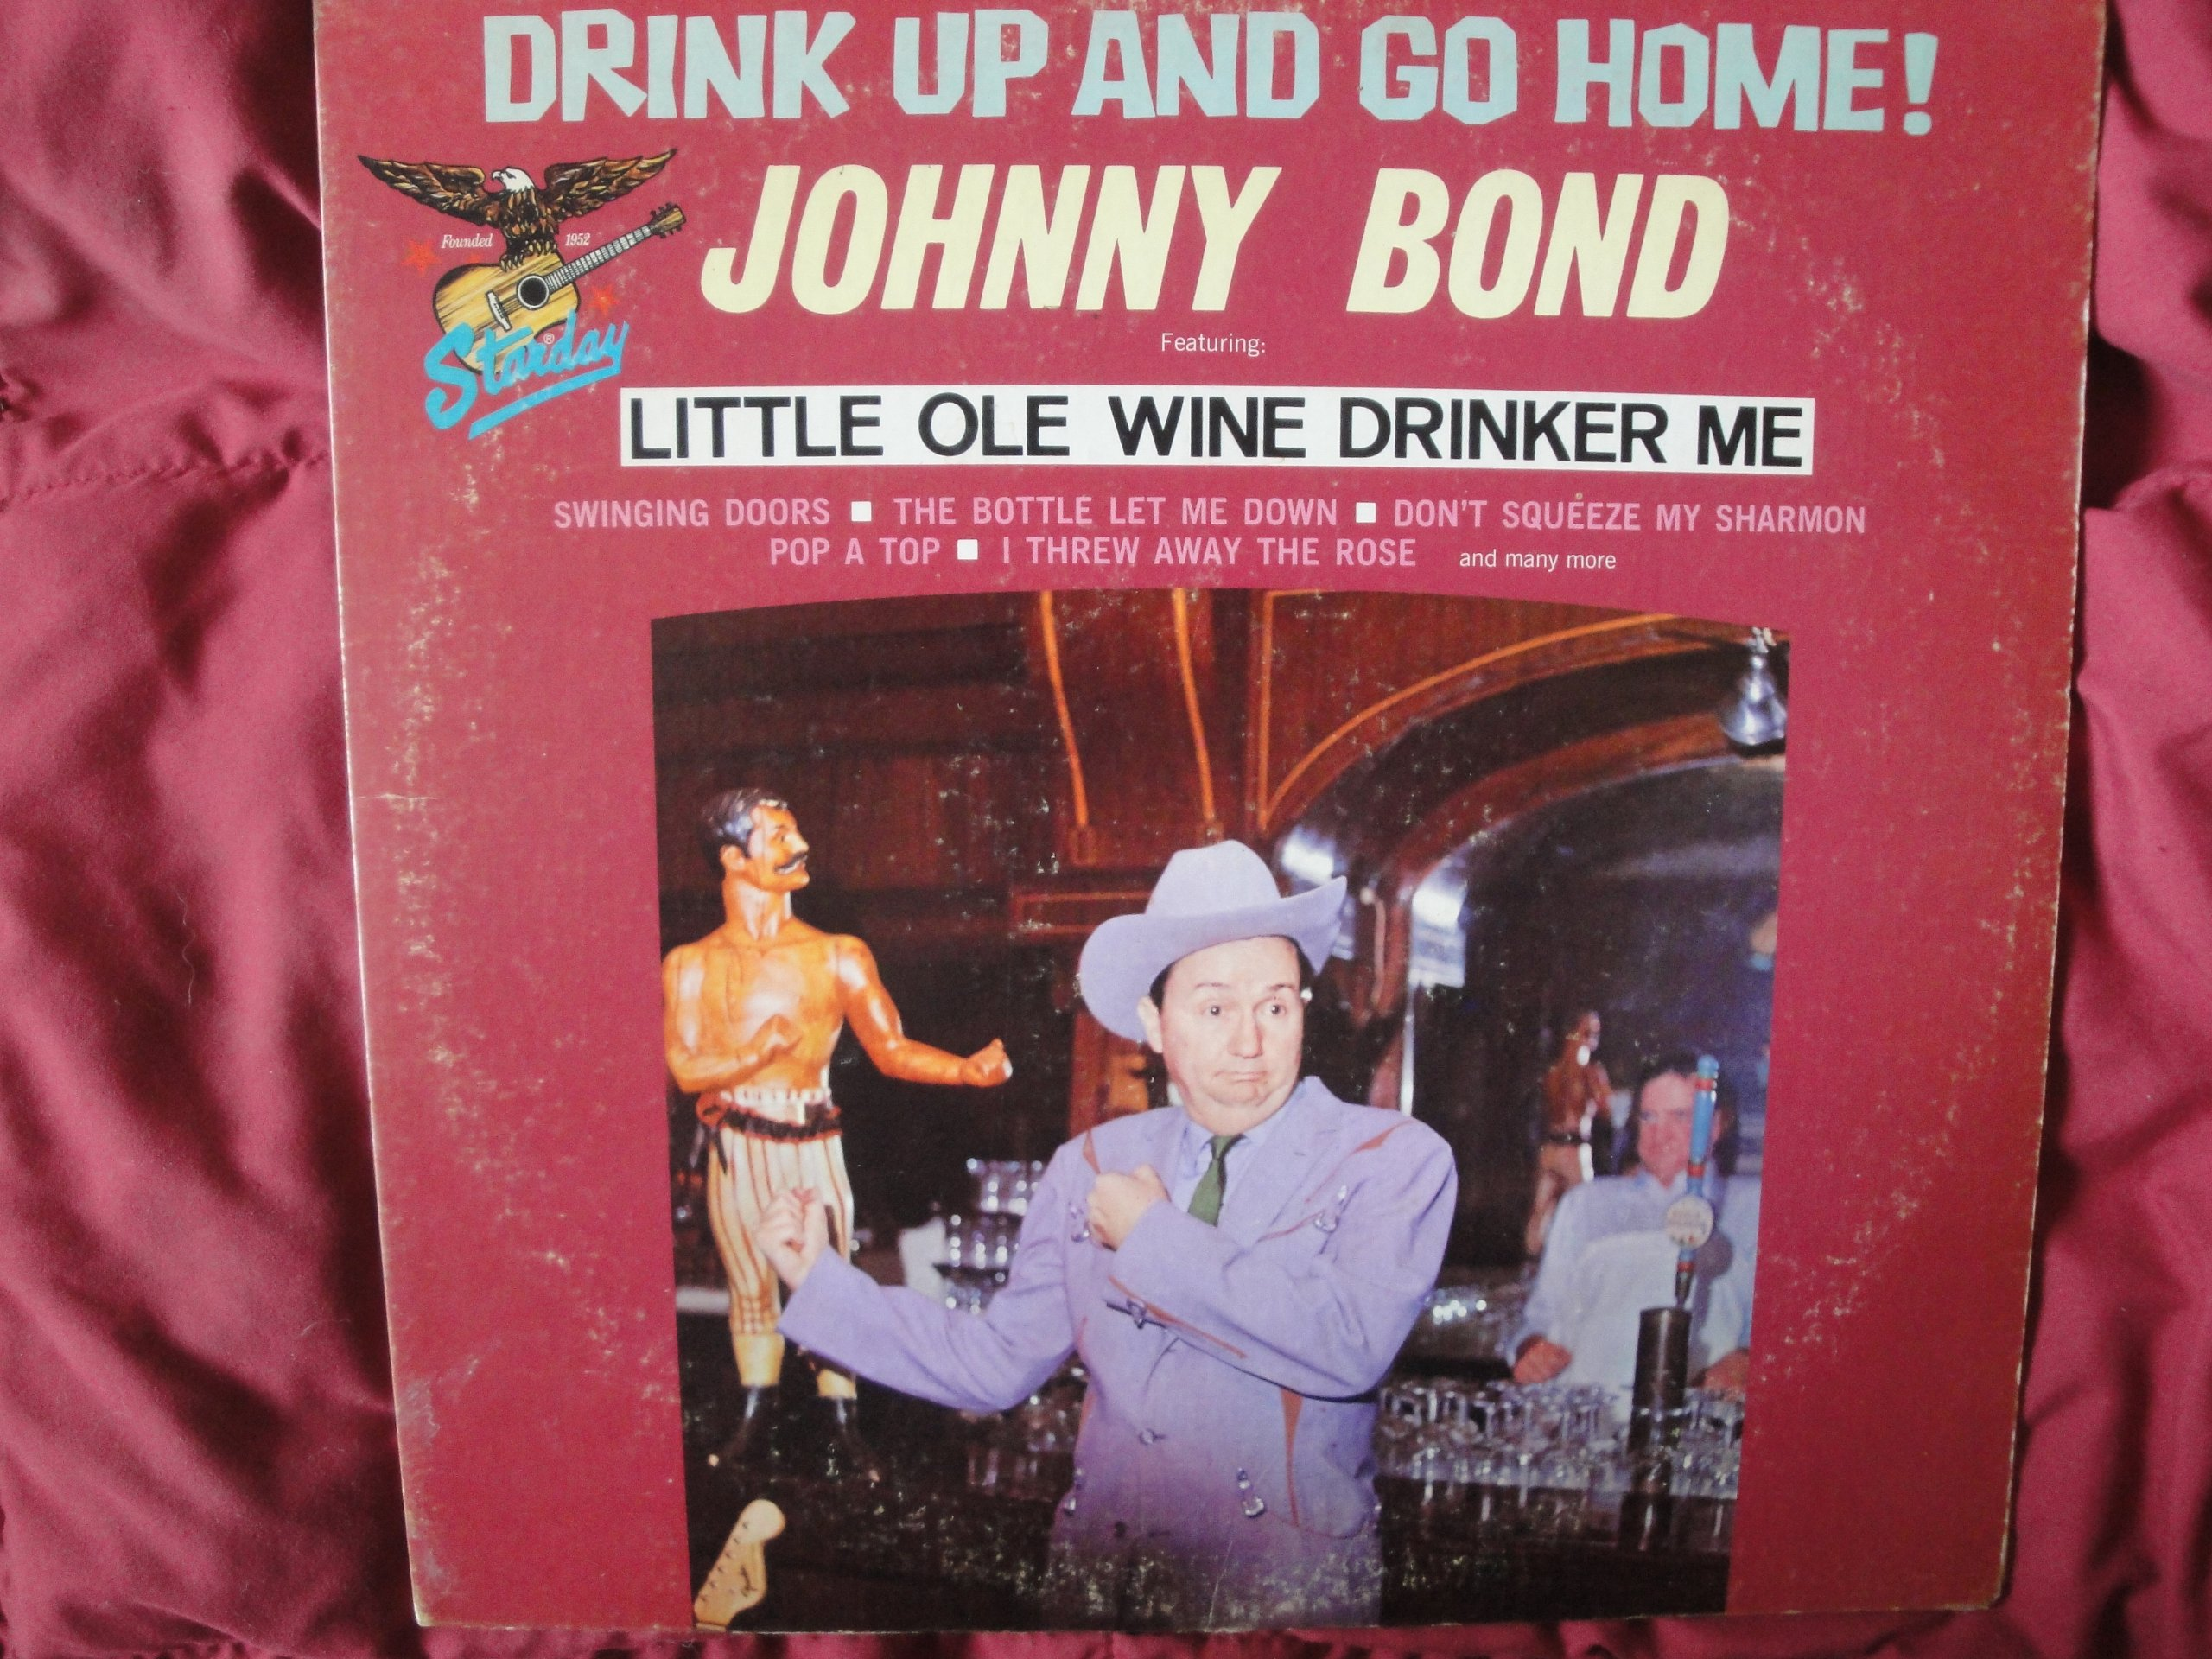 Drink Up and Go Home! by Johnny Bond on Starday Records SLP 416, Stereo Vinyl Lp Record Album, Featuring Little Ole Wine Drinker Me, Vg++